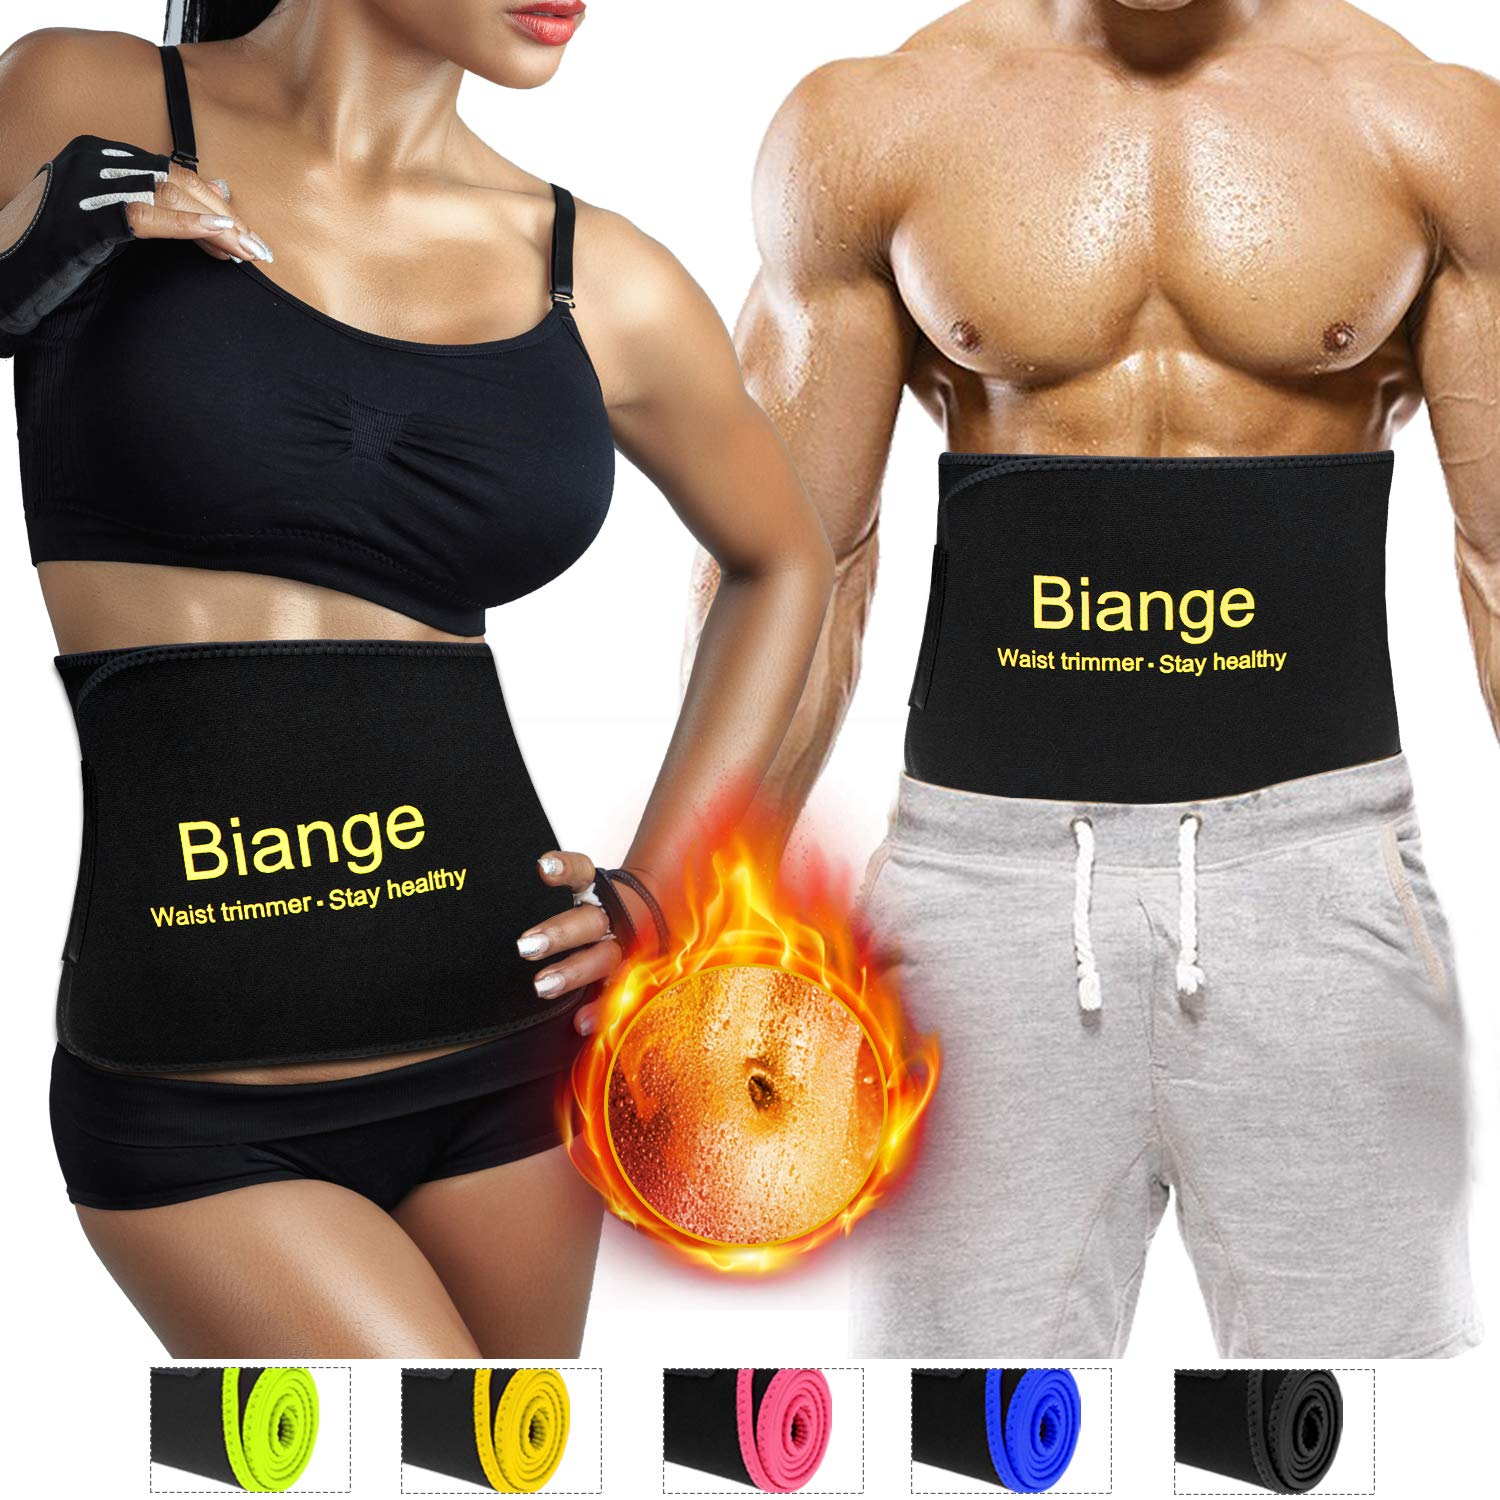 Comprar waist trainer reviews